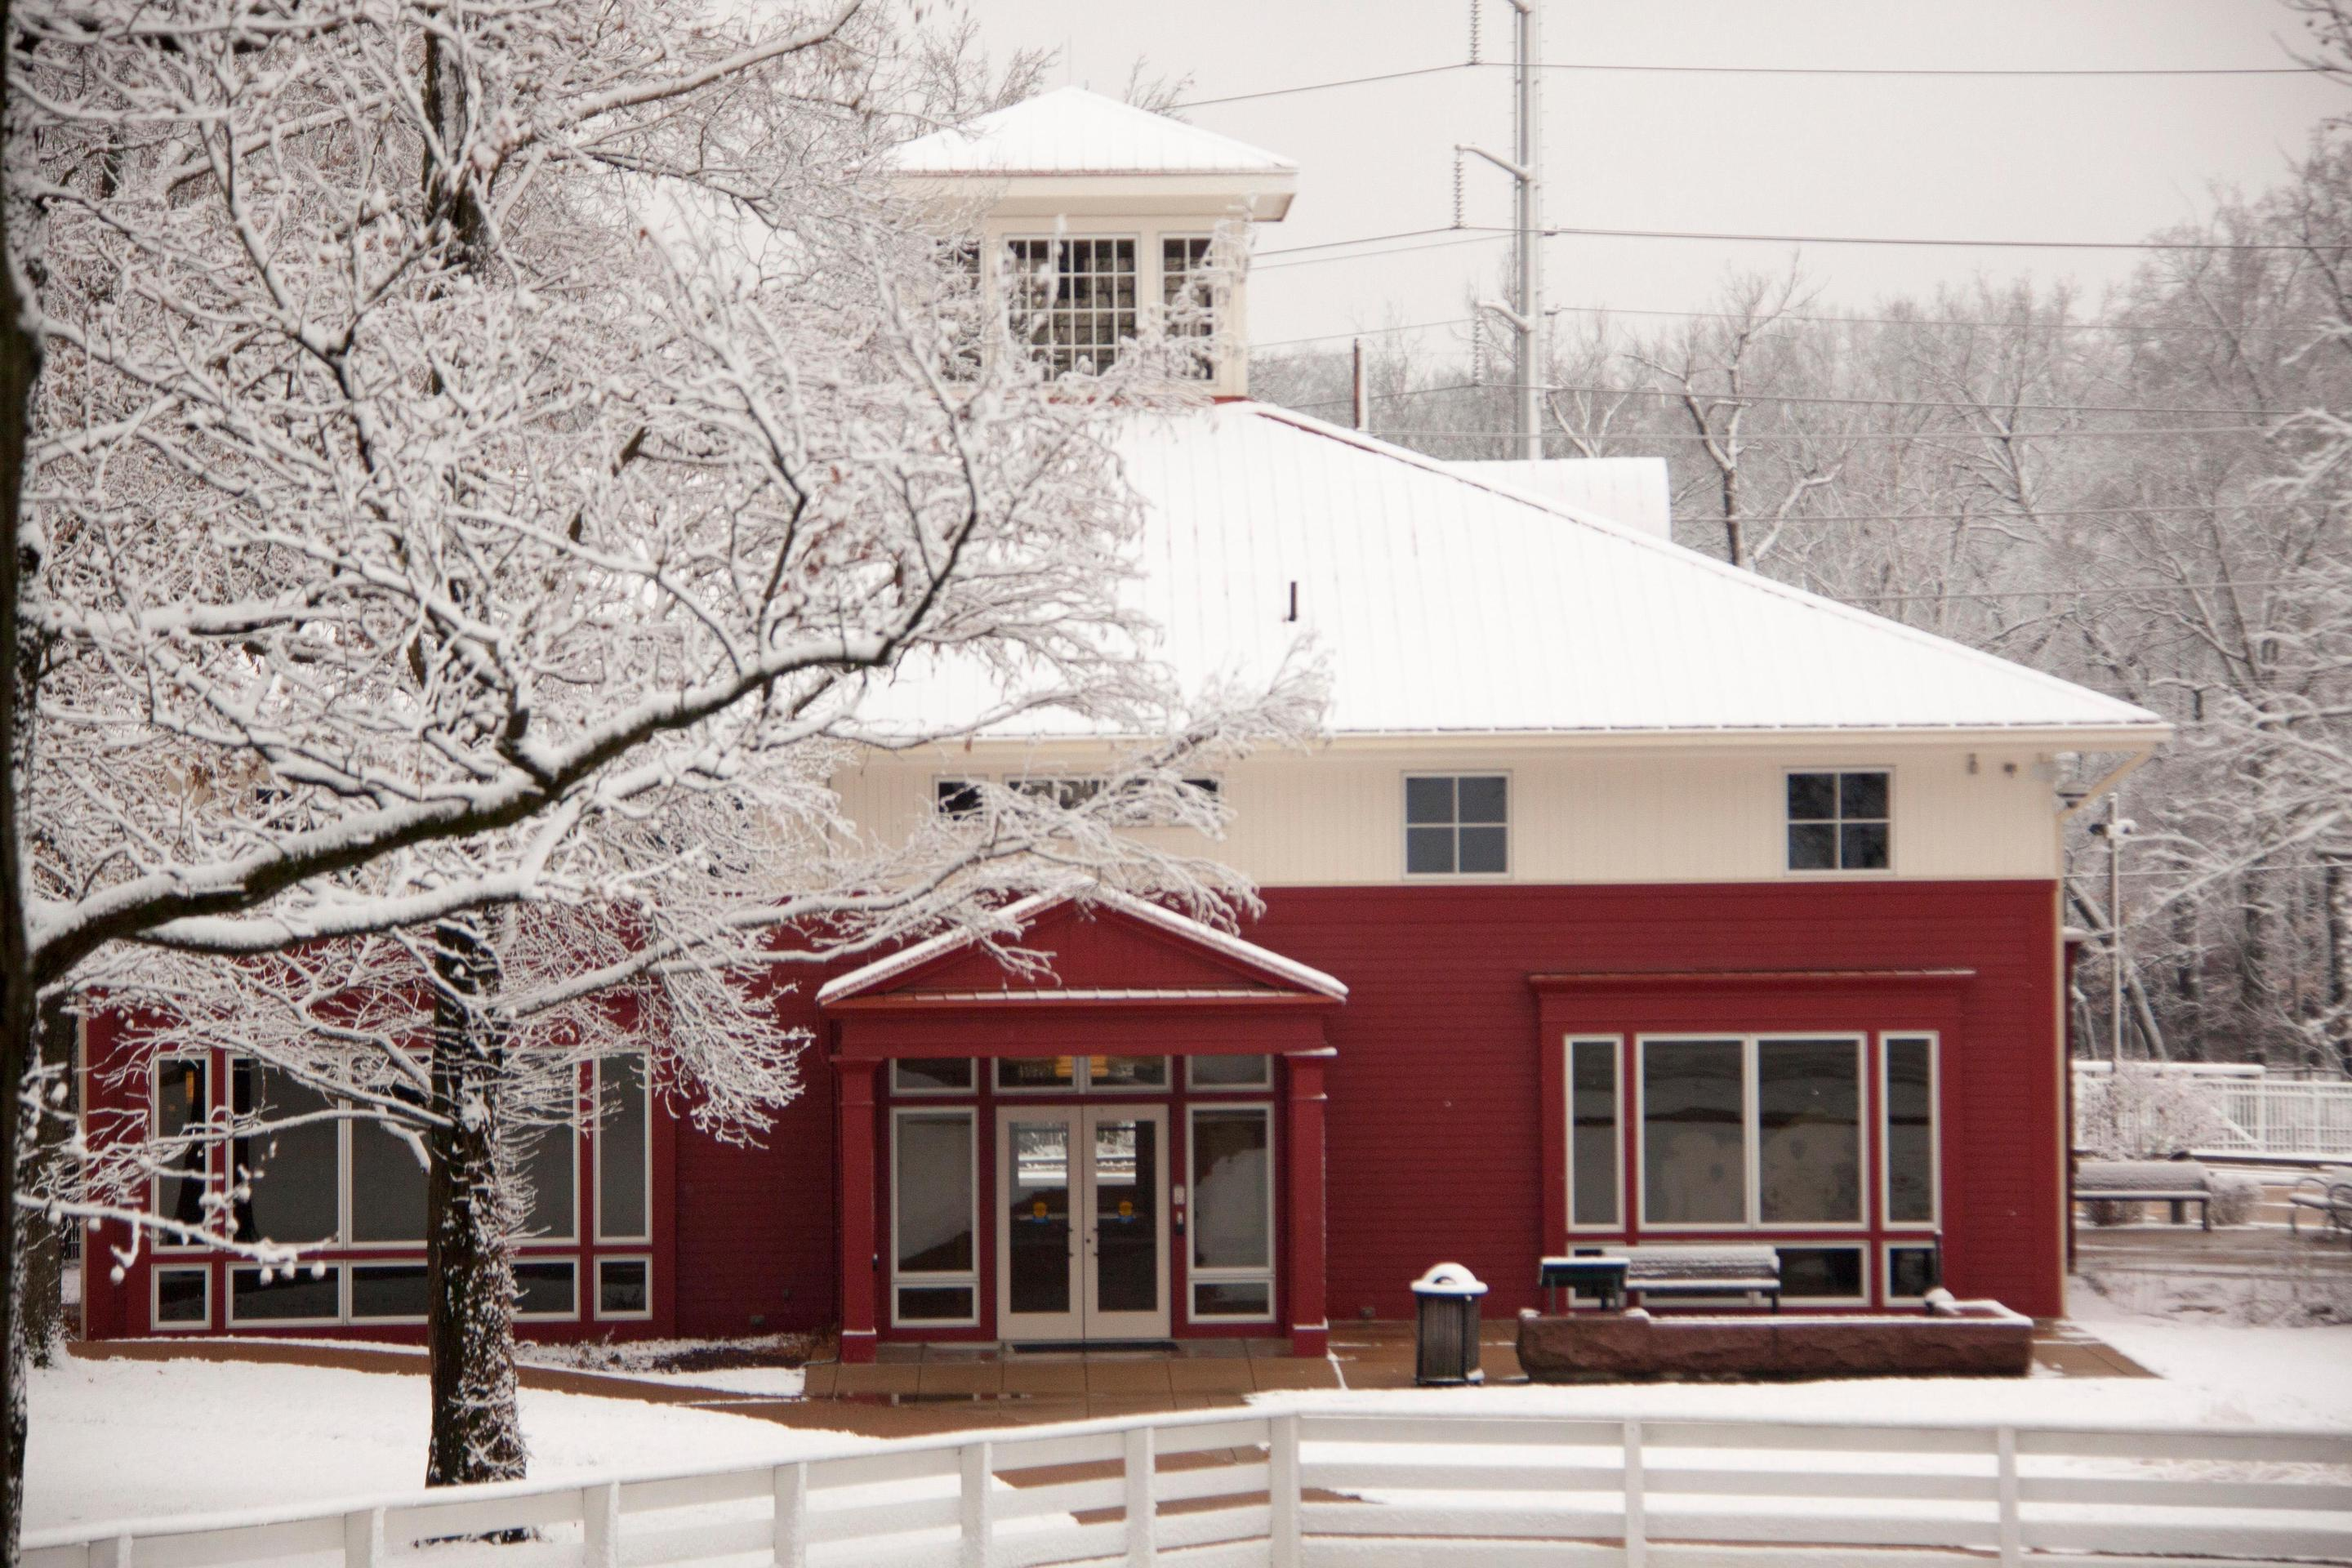 Visitor Center in the SnowVisitor Center at Ulysses S. Grant National Historic Site on a snowy day.